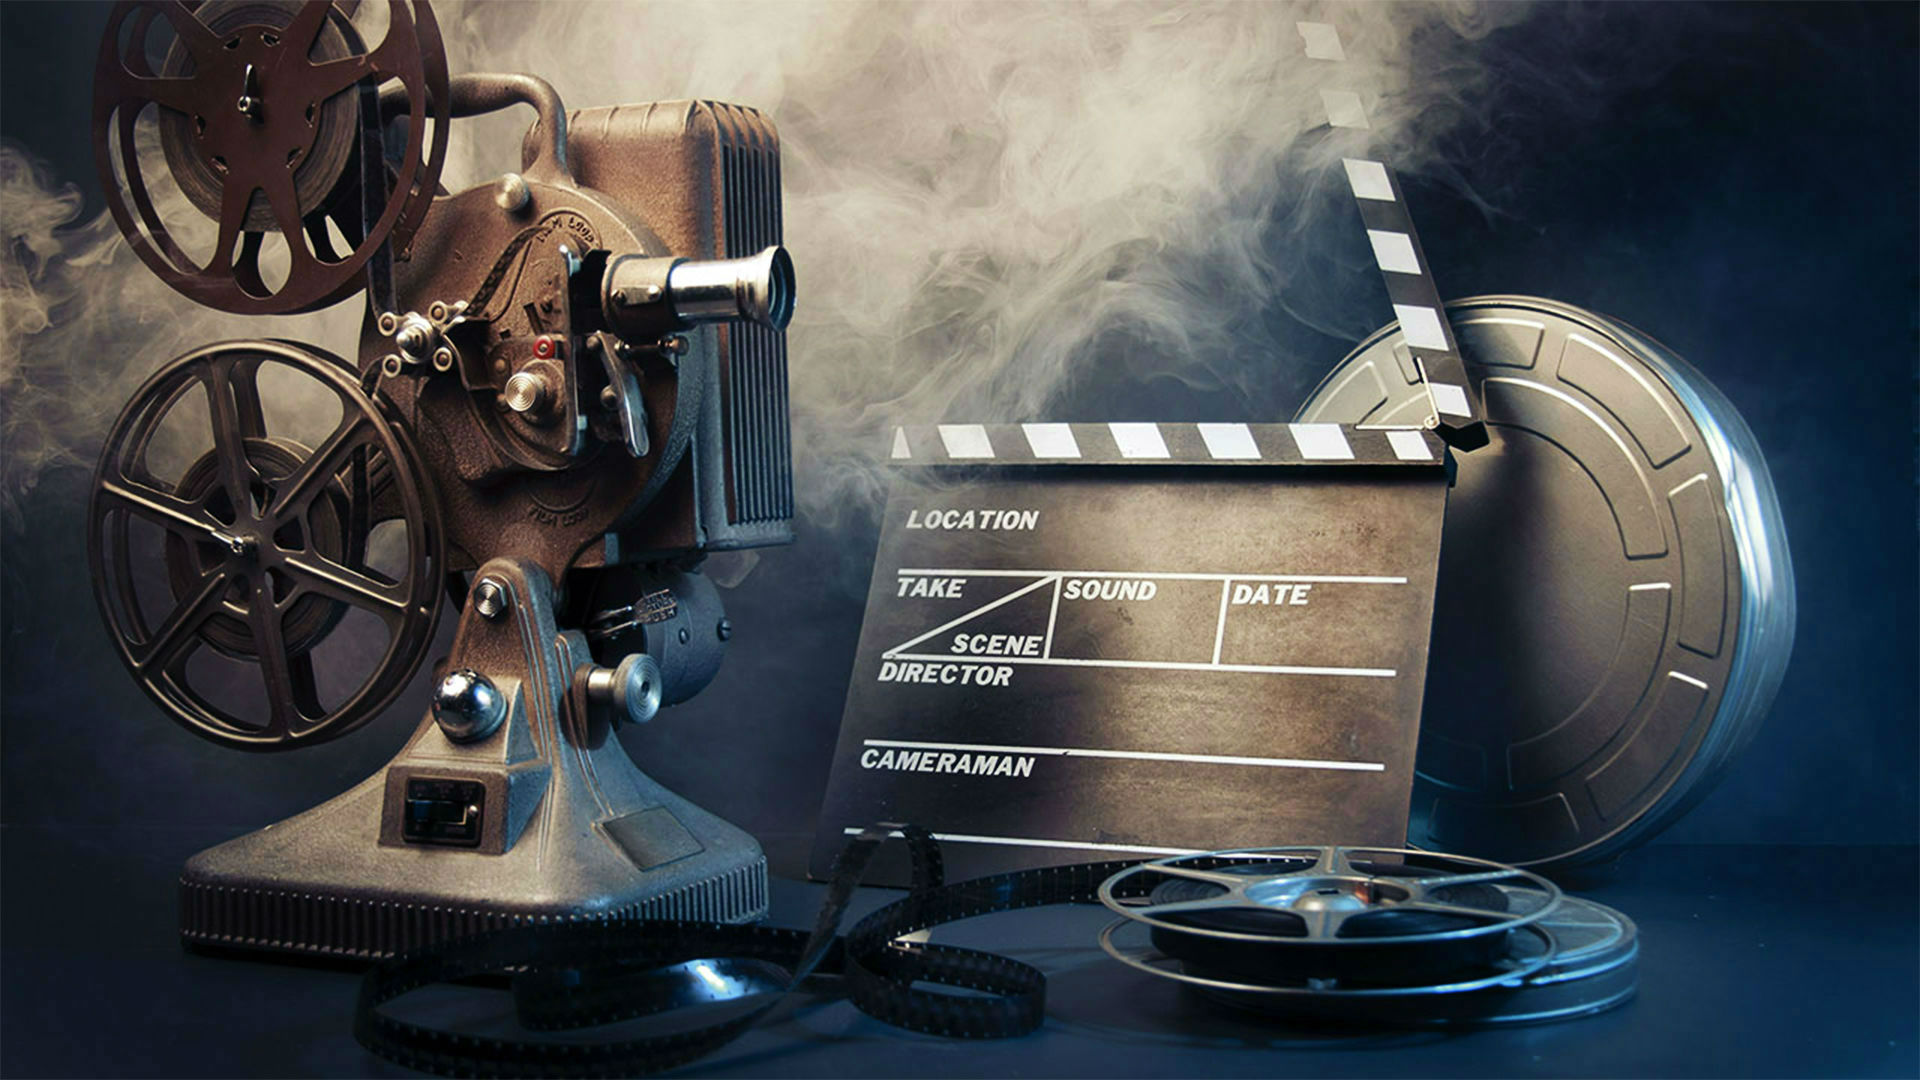 show you how to see any movie/series online free